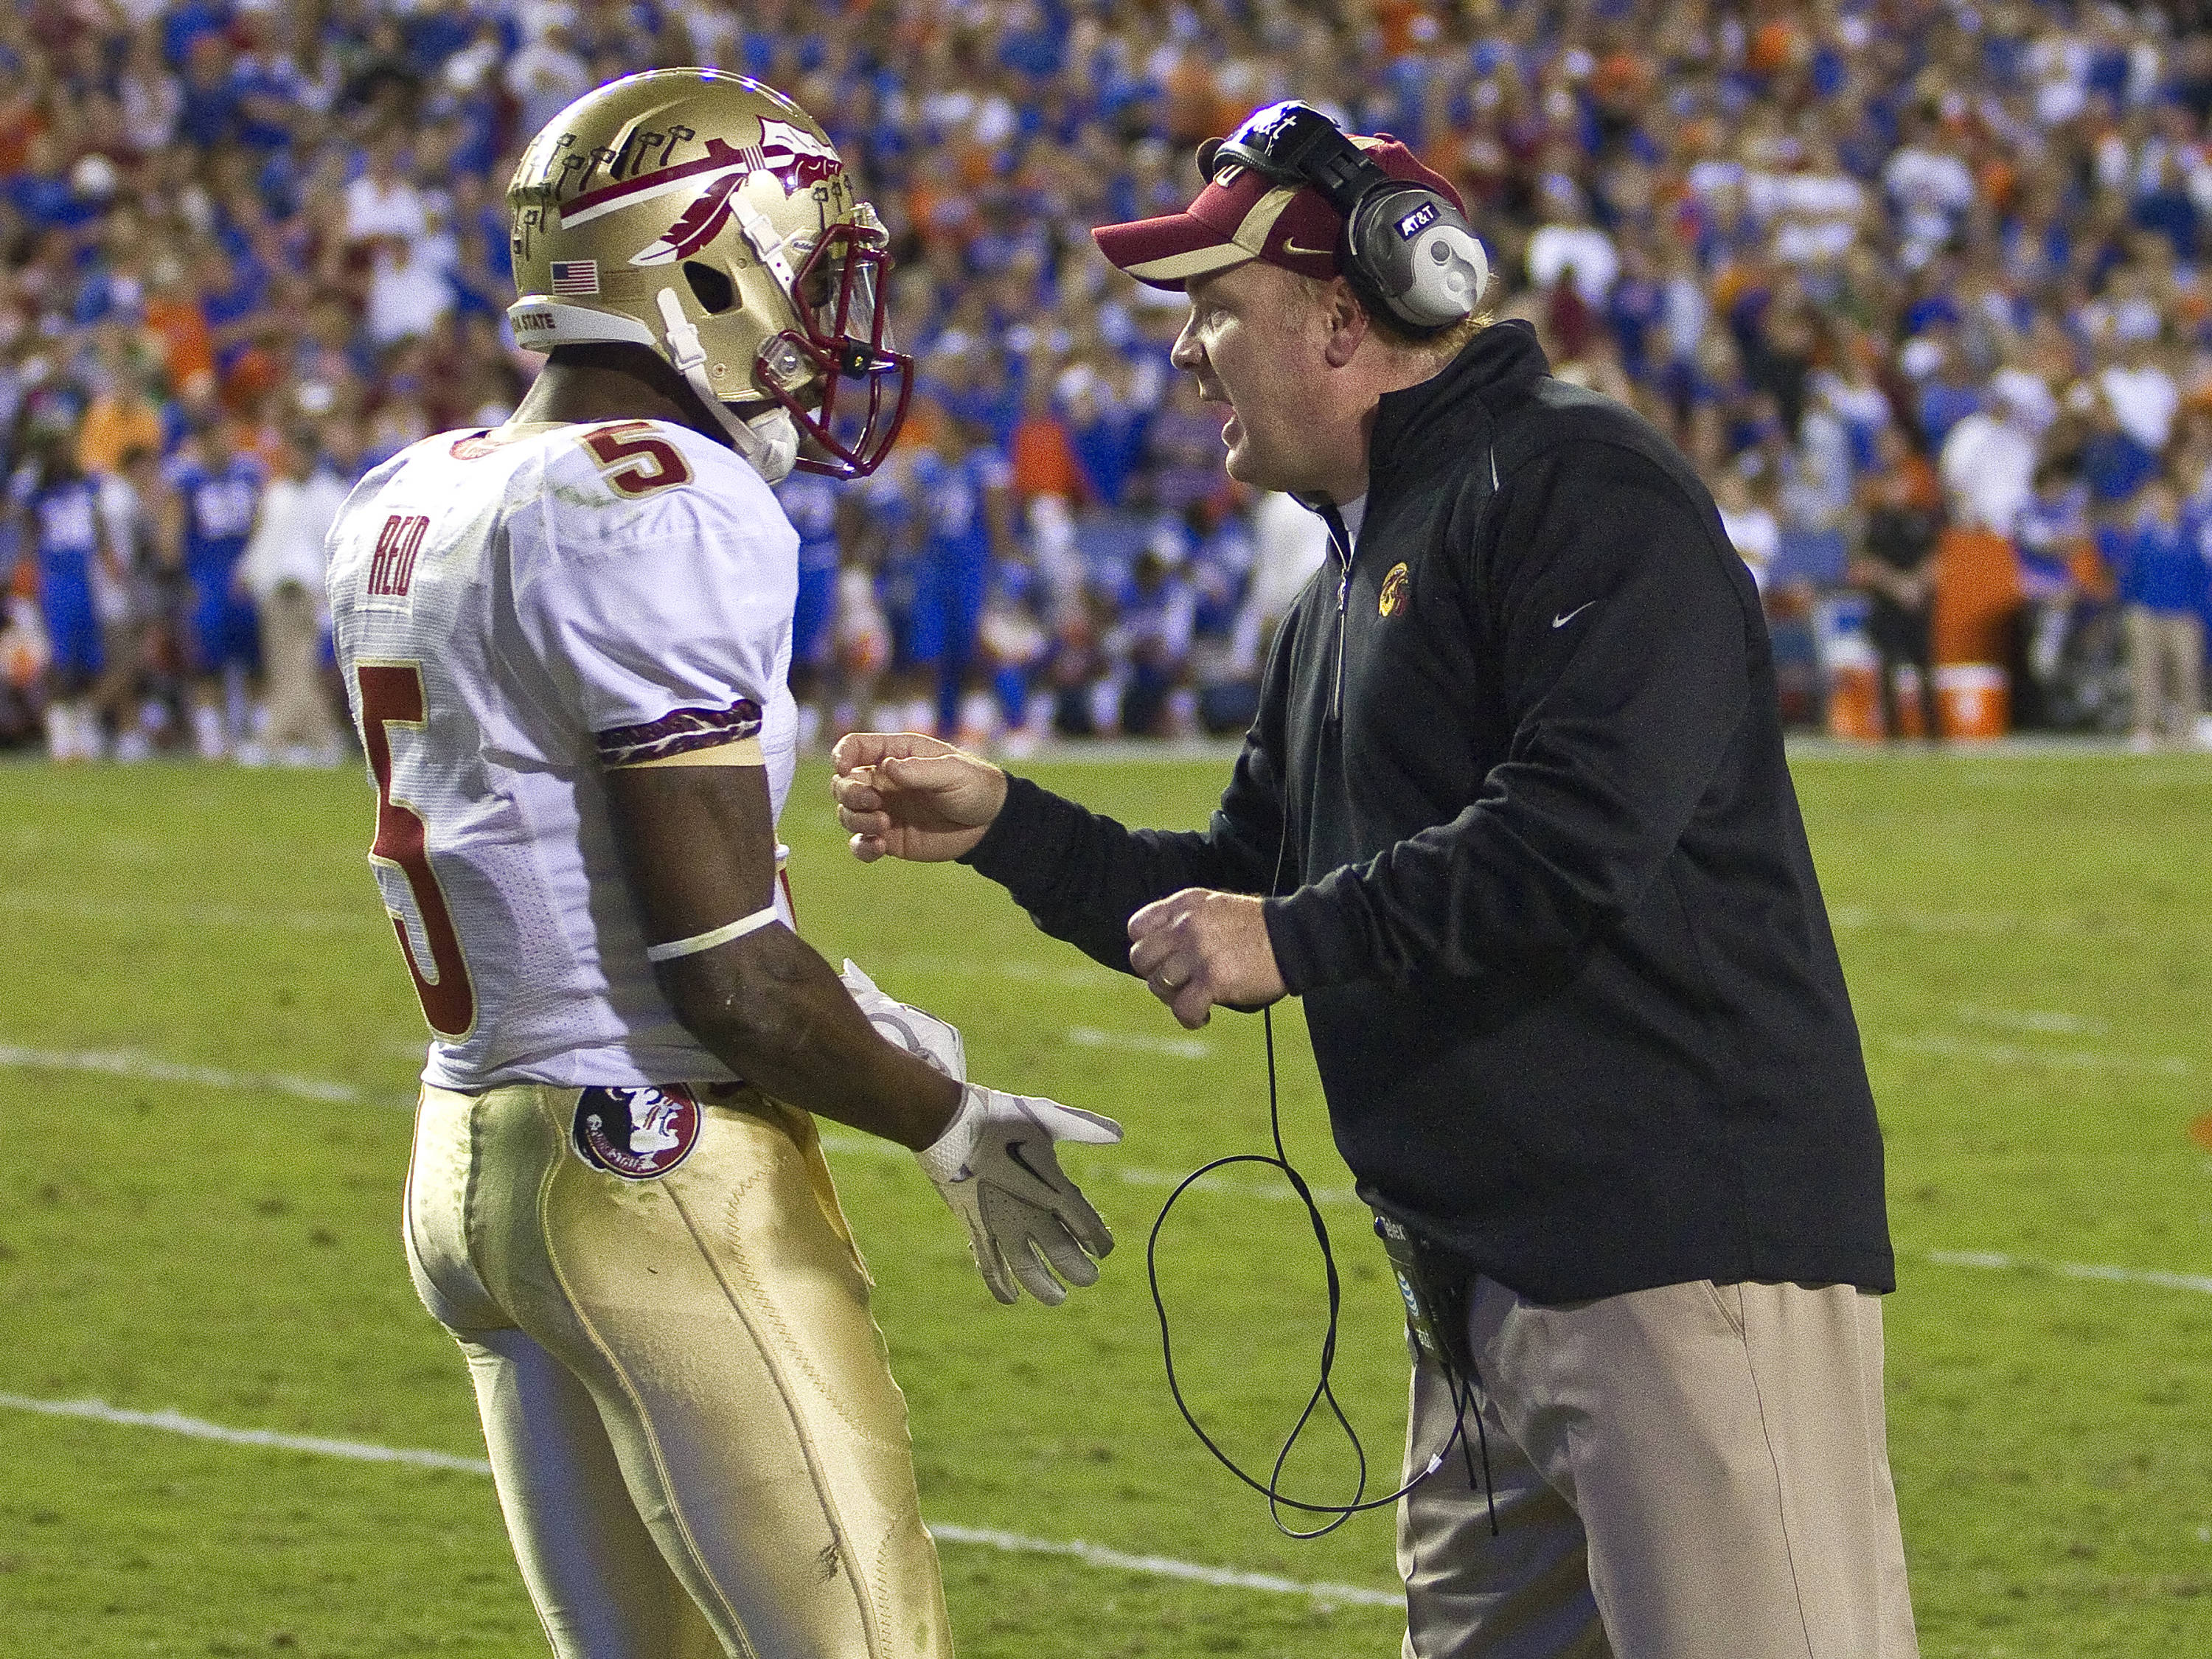 Defensive coordinator Mark Stoops with instructions to Greg Reid (5), FSU vs Florida, 11/26/2011